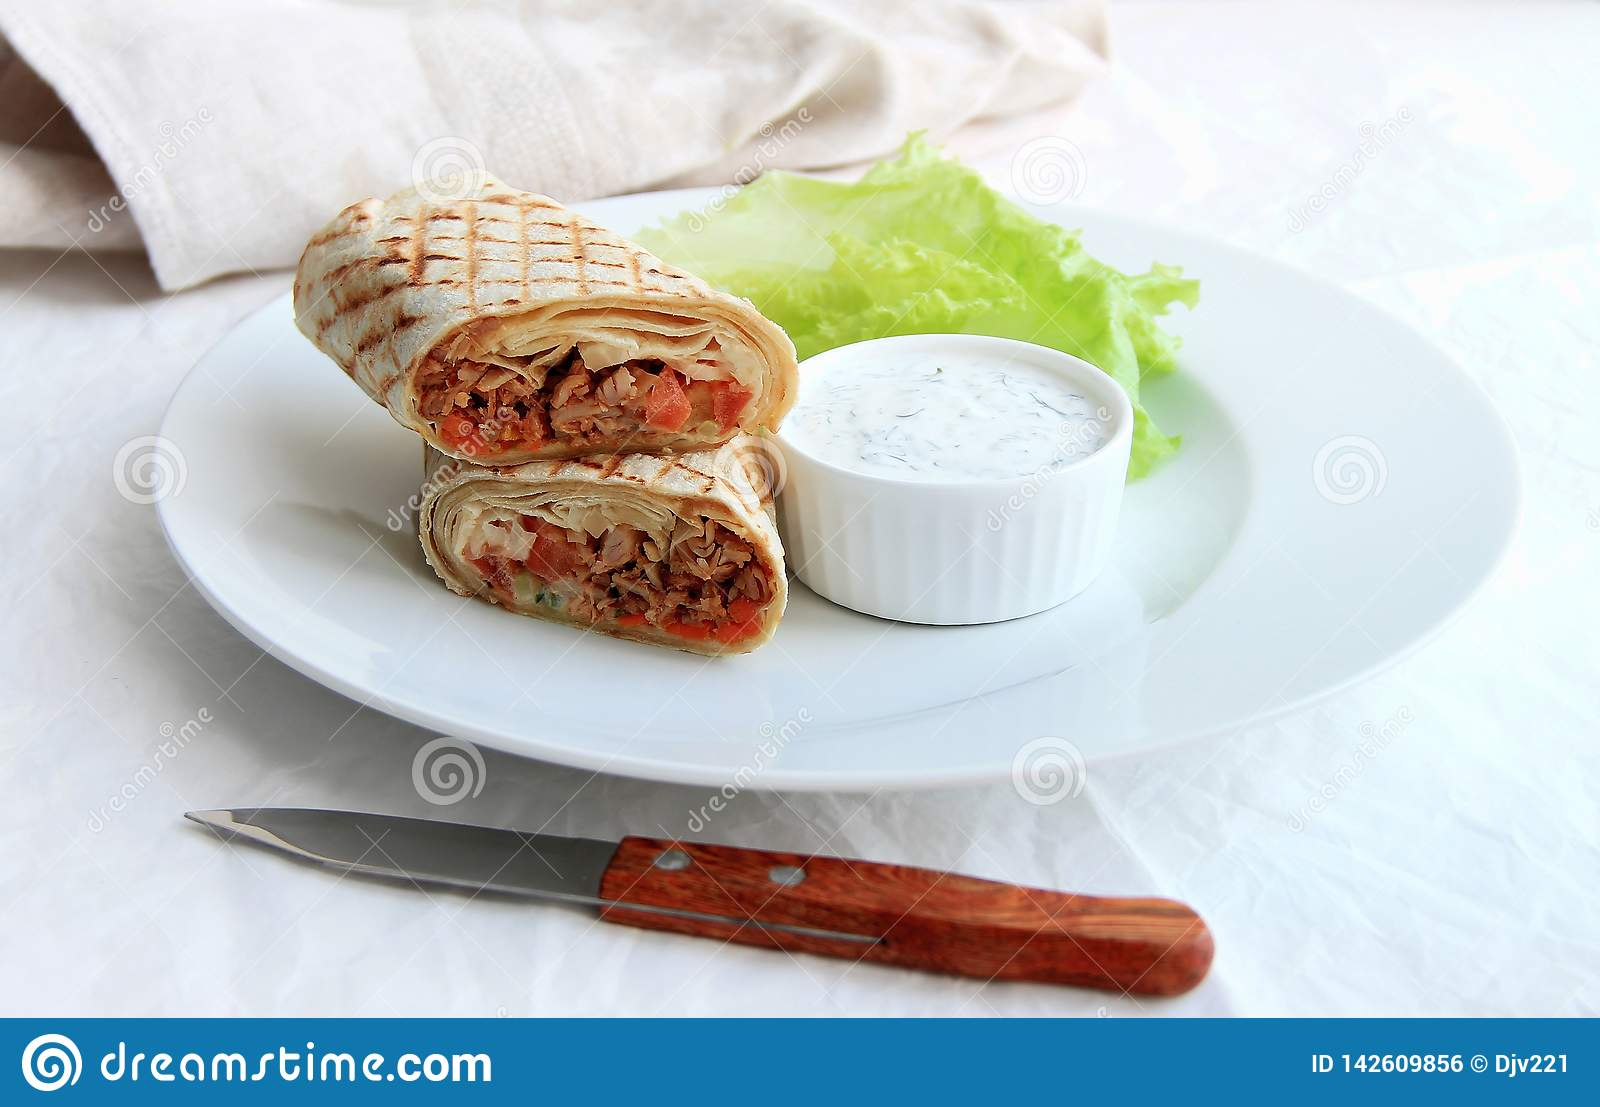 shawarma with chicken, vegetables and salad on a plate